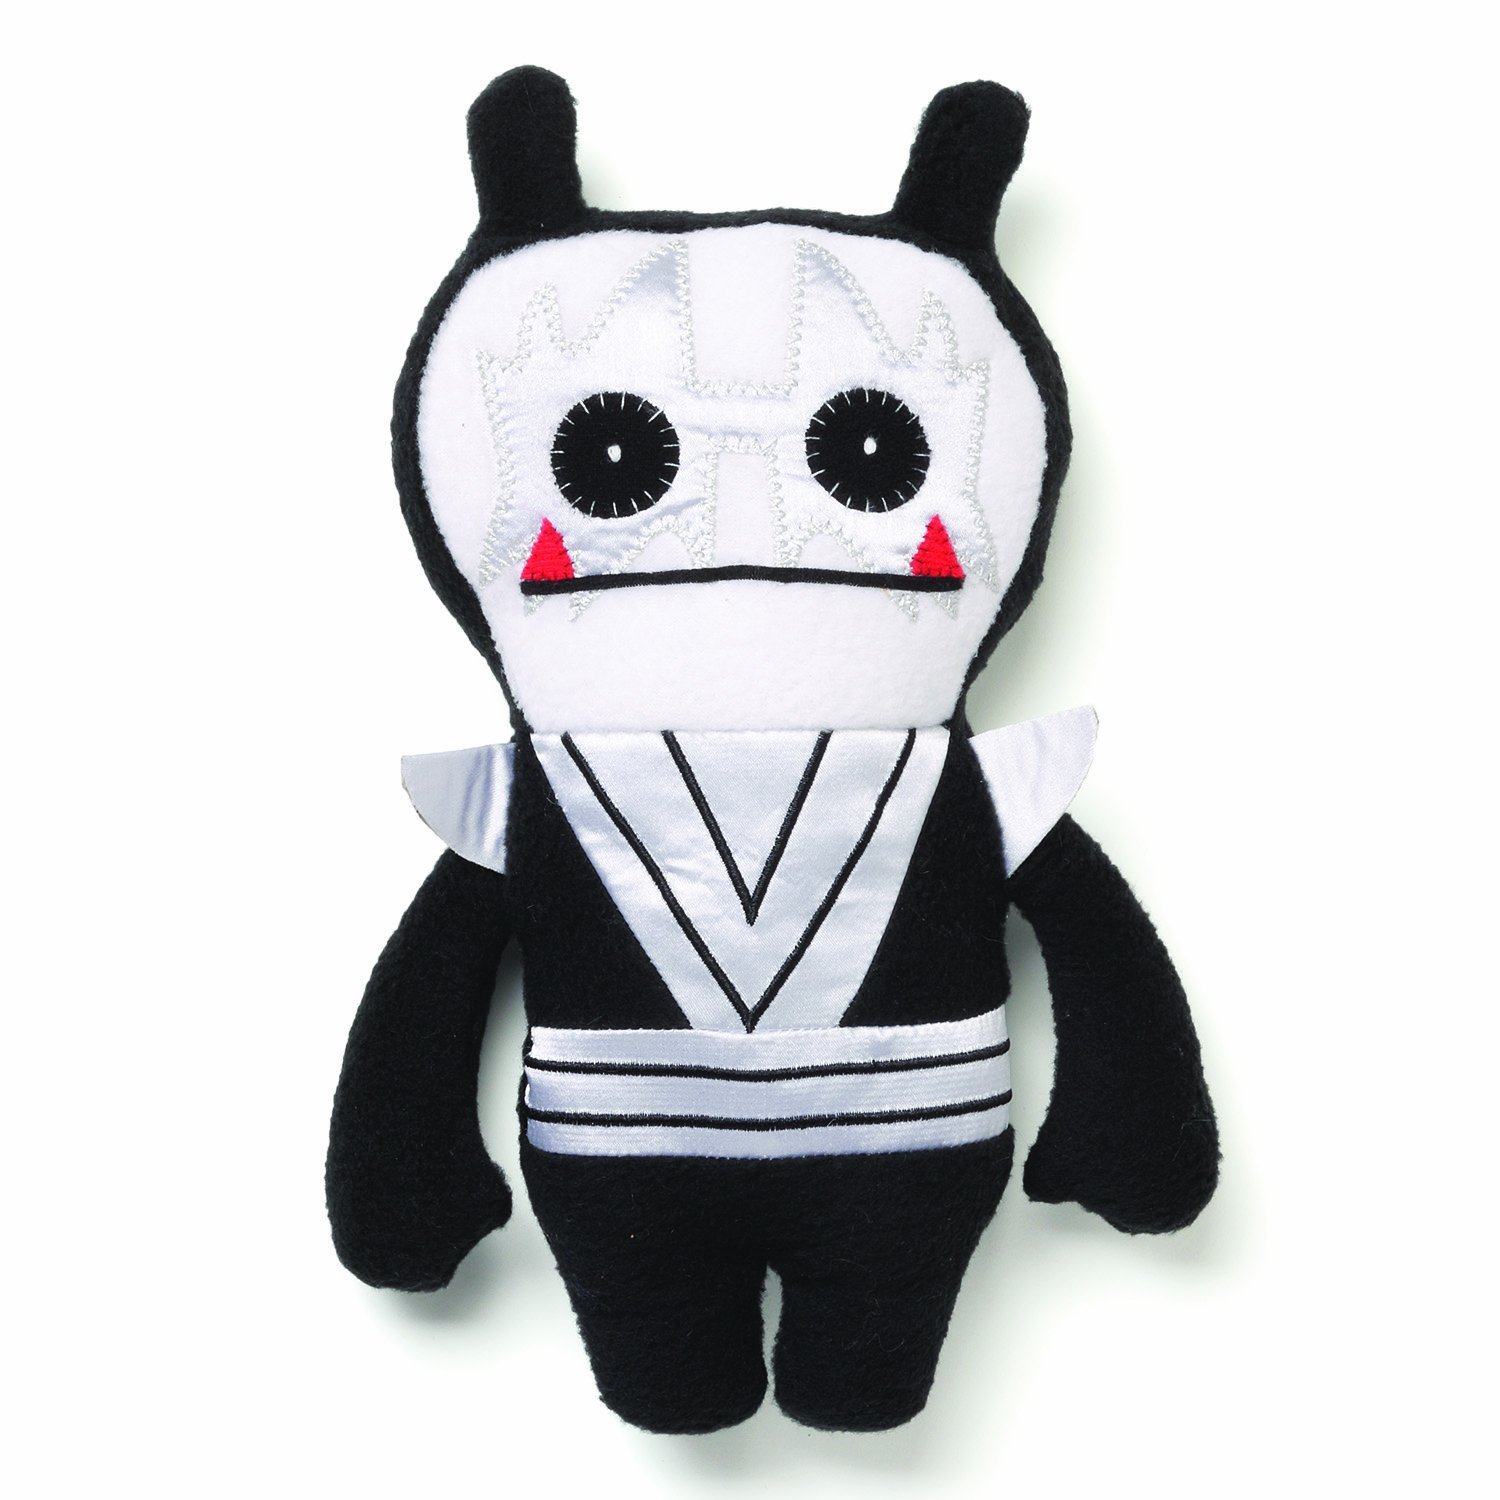 Plush-Ugly-Doll-Kiss-Wage-Spaceman-Soft-Doll-Toys-Gifts-4043479-2